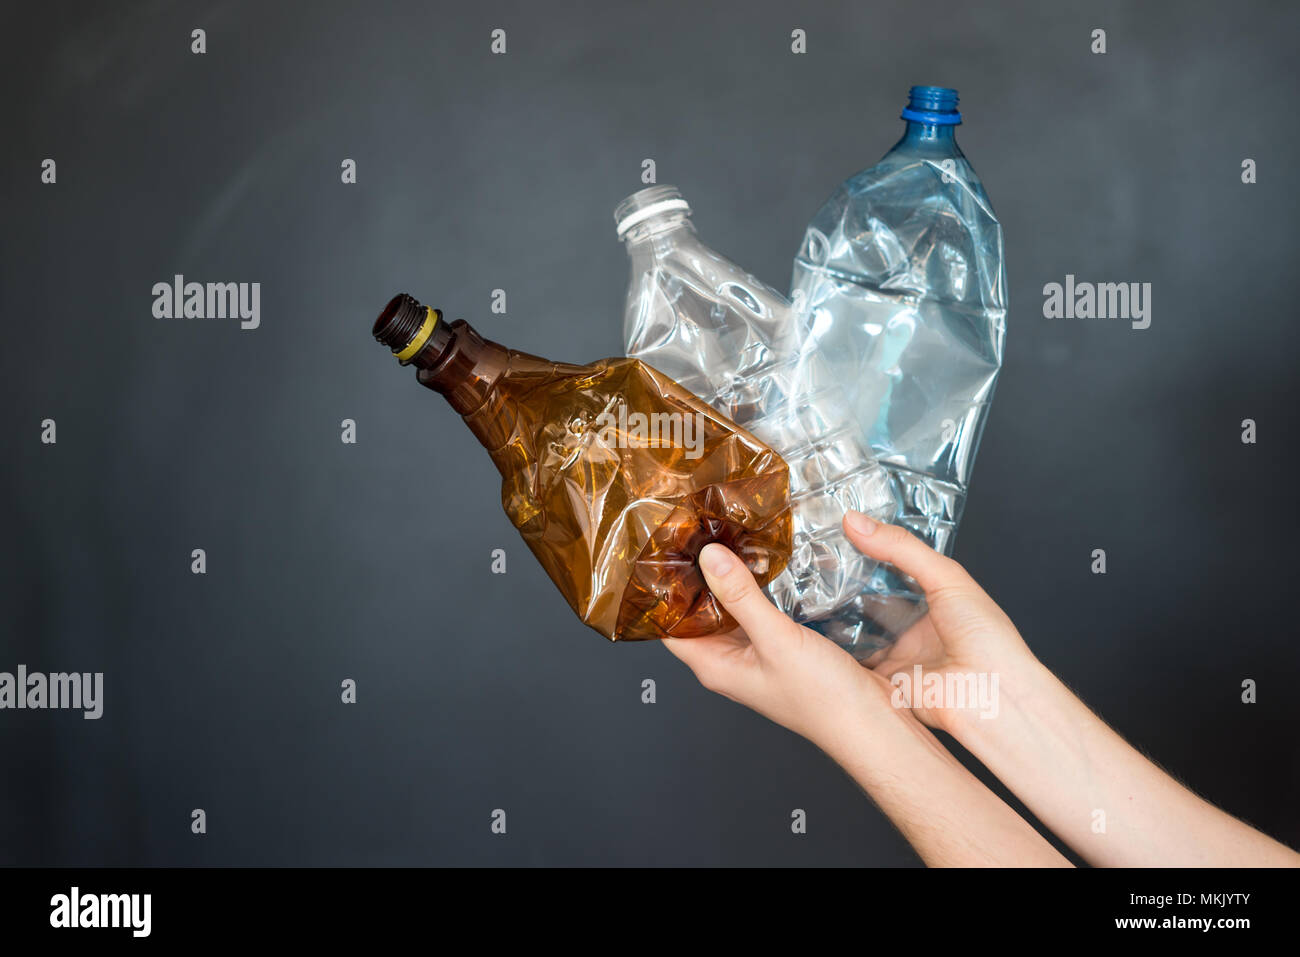 Female hand holding different types of crushed plastic bottles on black background. Recyclable waste. Recycling, reuse, garbage disposal, resources, e - Stock Image